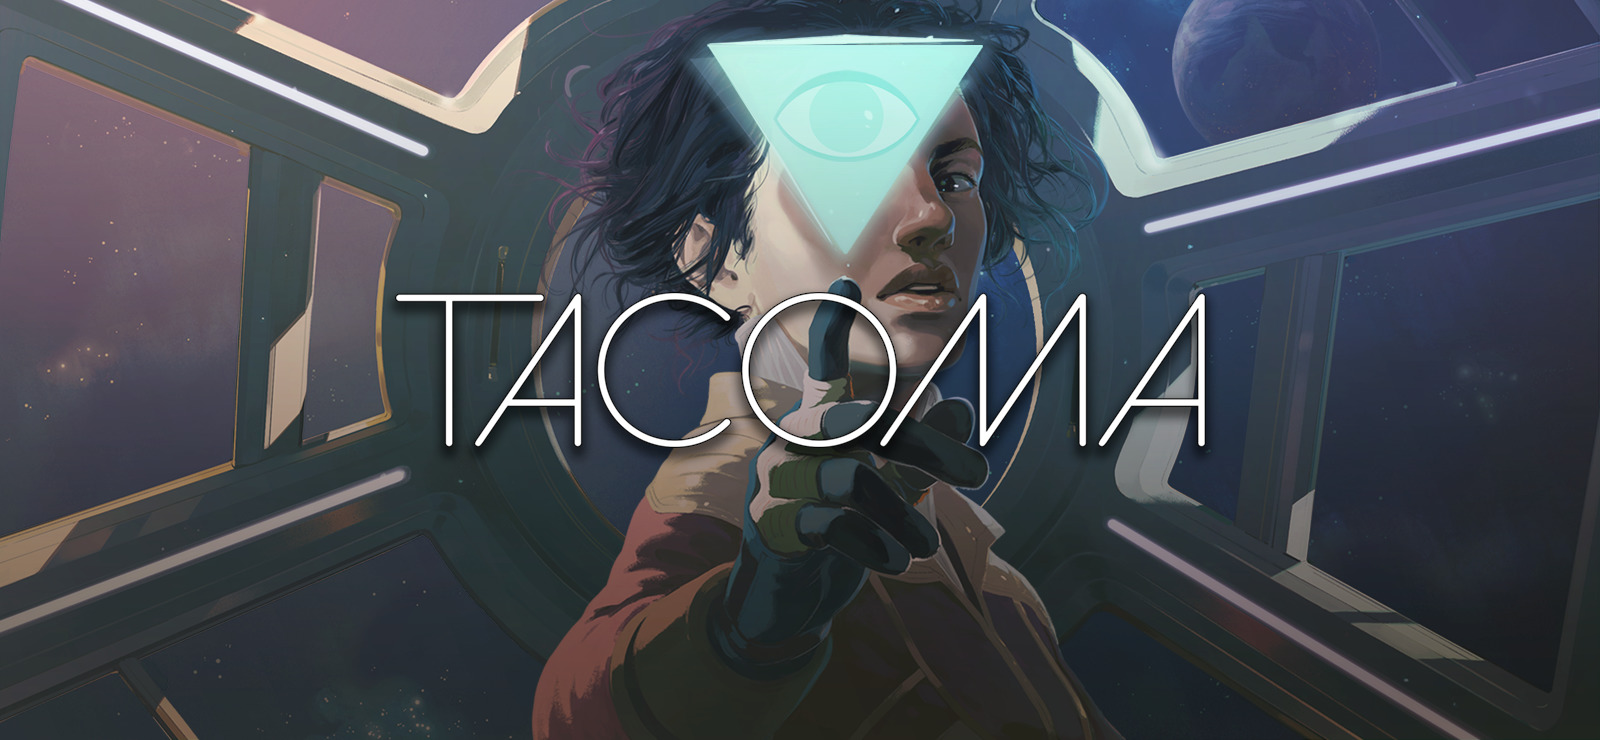 New Xbox Game Pass content includes Tacoma